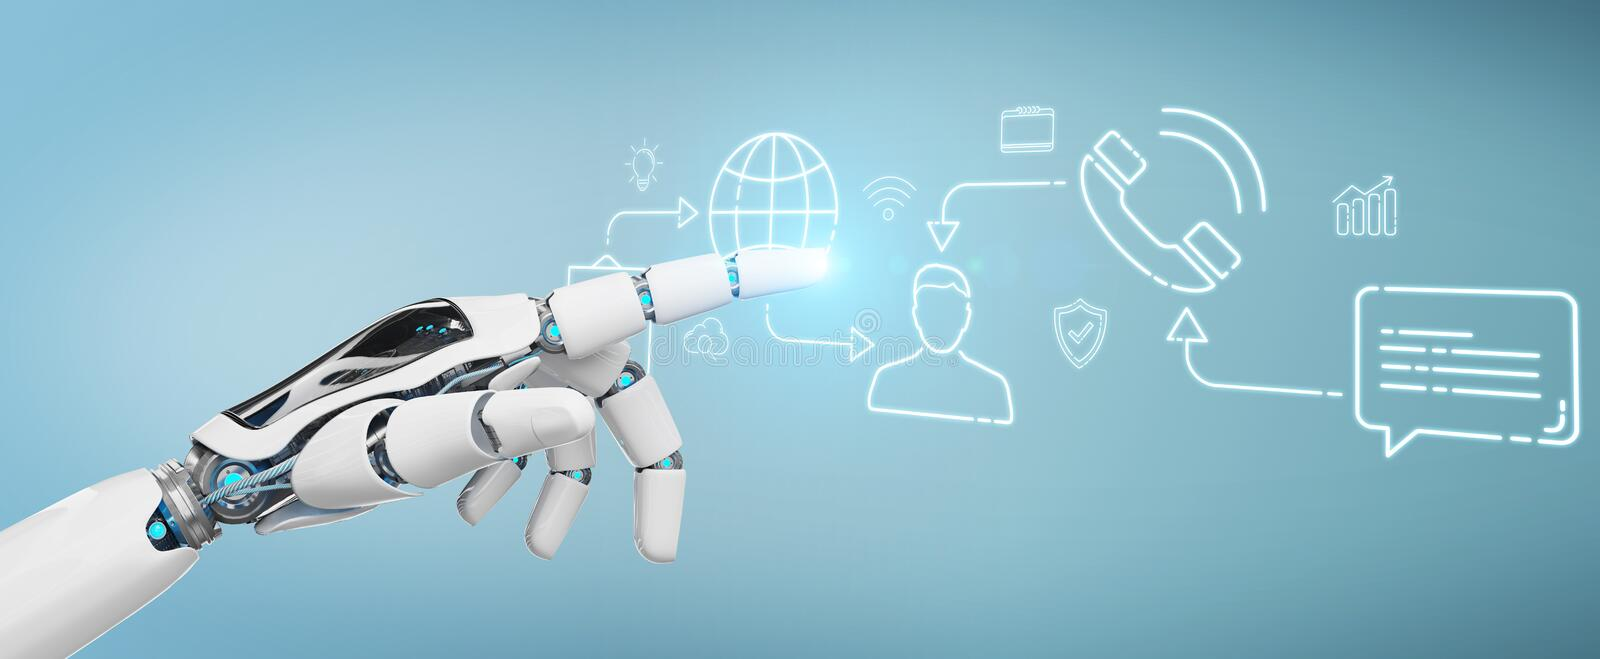 White robot controlling social network icons interface. White robot on blurred background controlling social network icons interface royalty free illustration